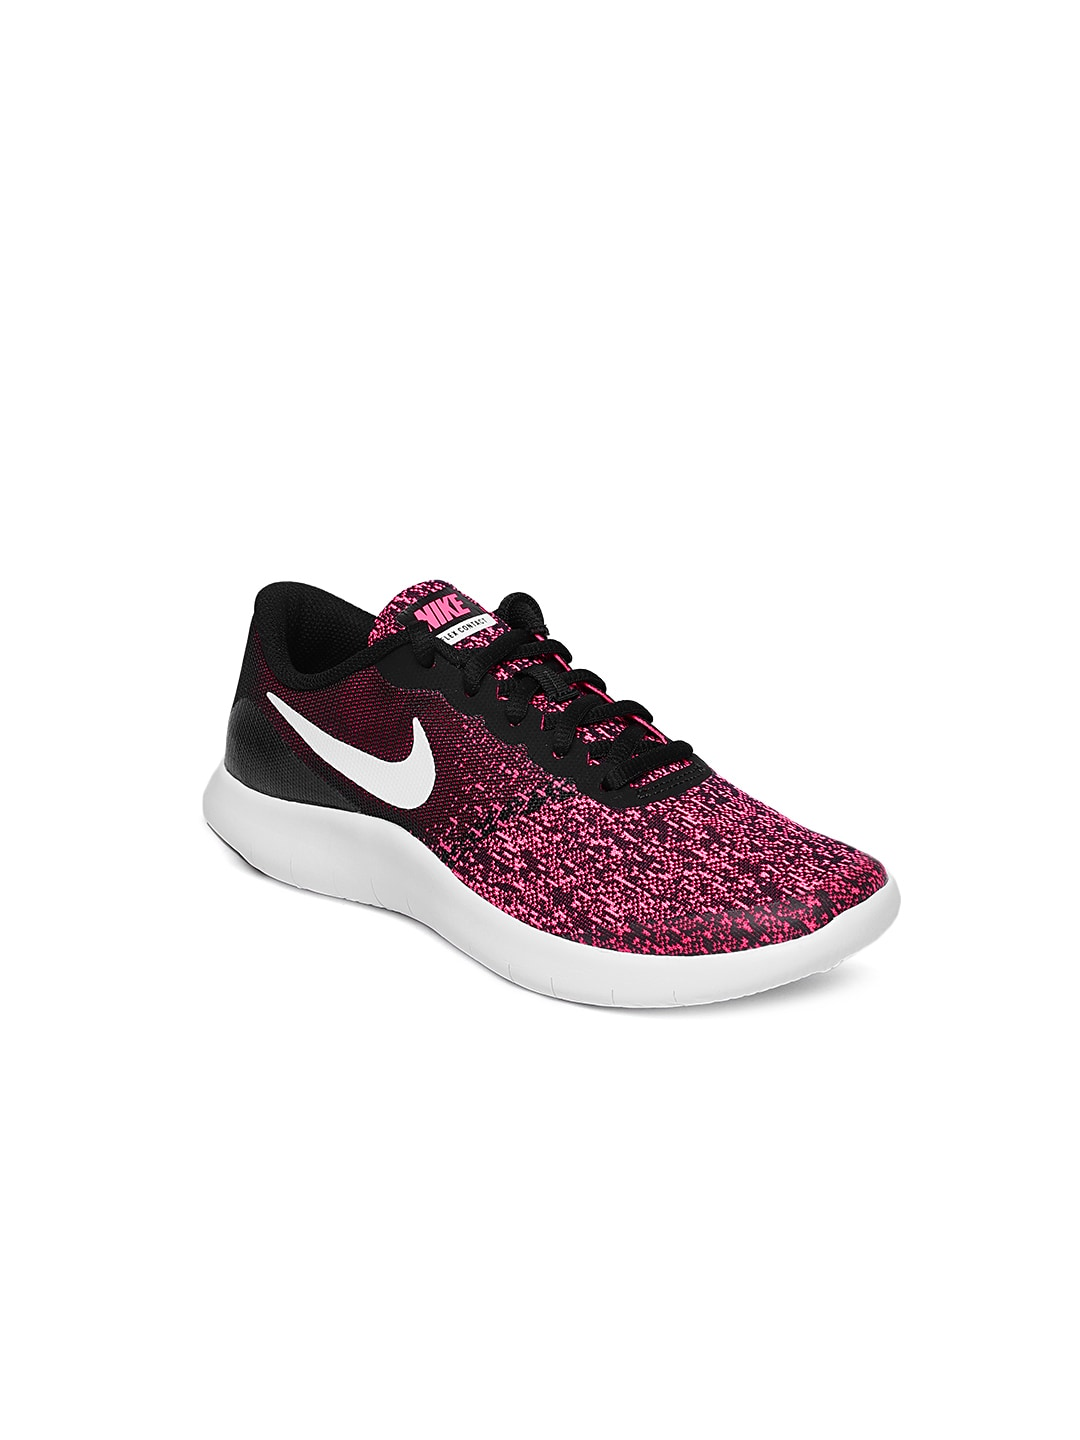 size 40 ea56c bc318 Nike Girls Black & Pink Printed Flex Contact Running Shoes